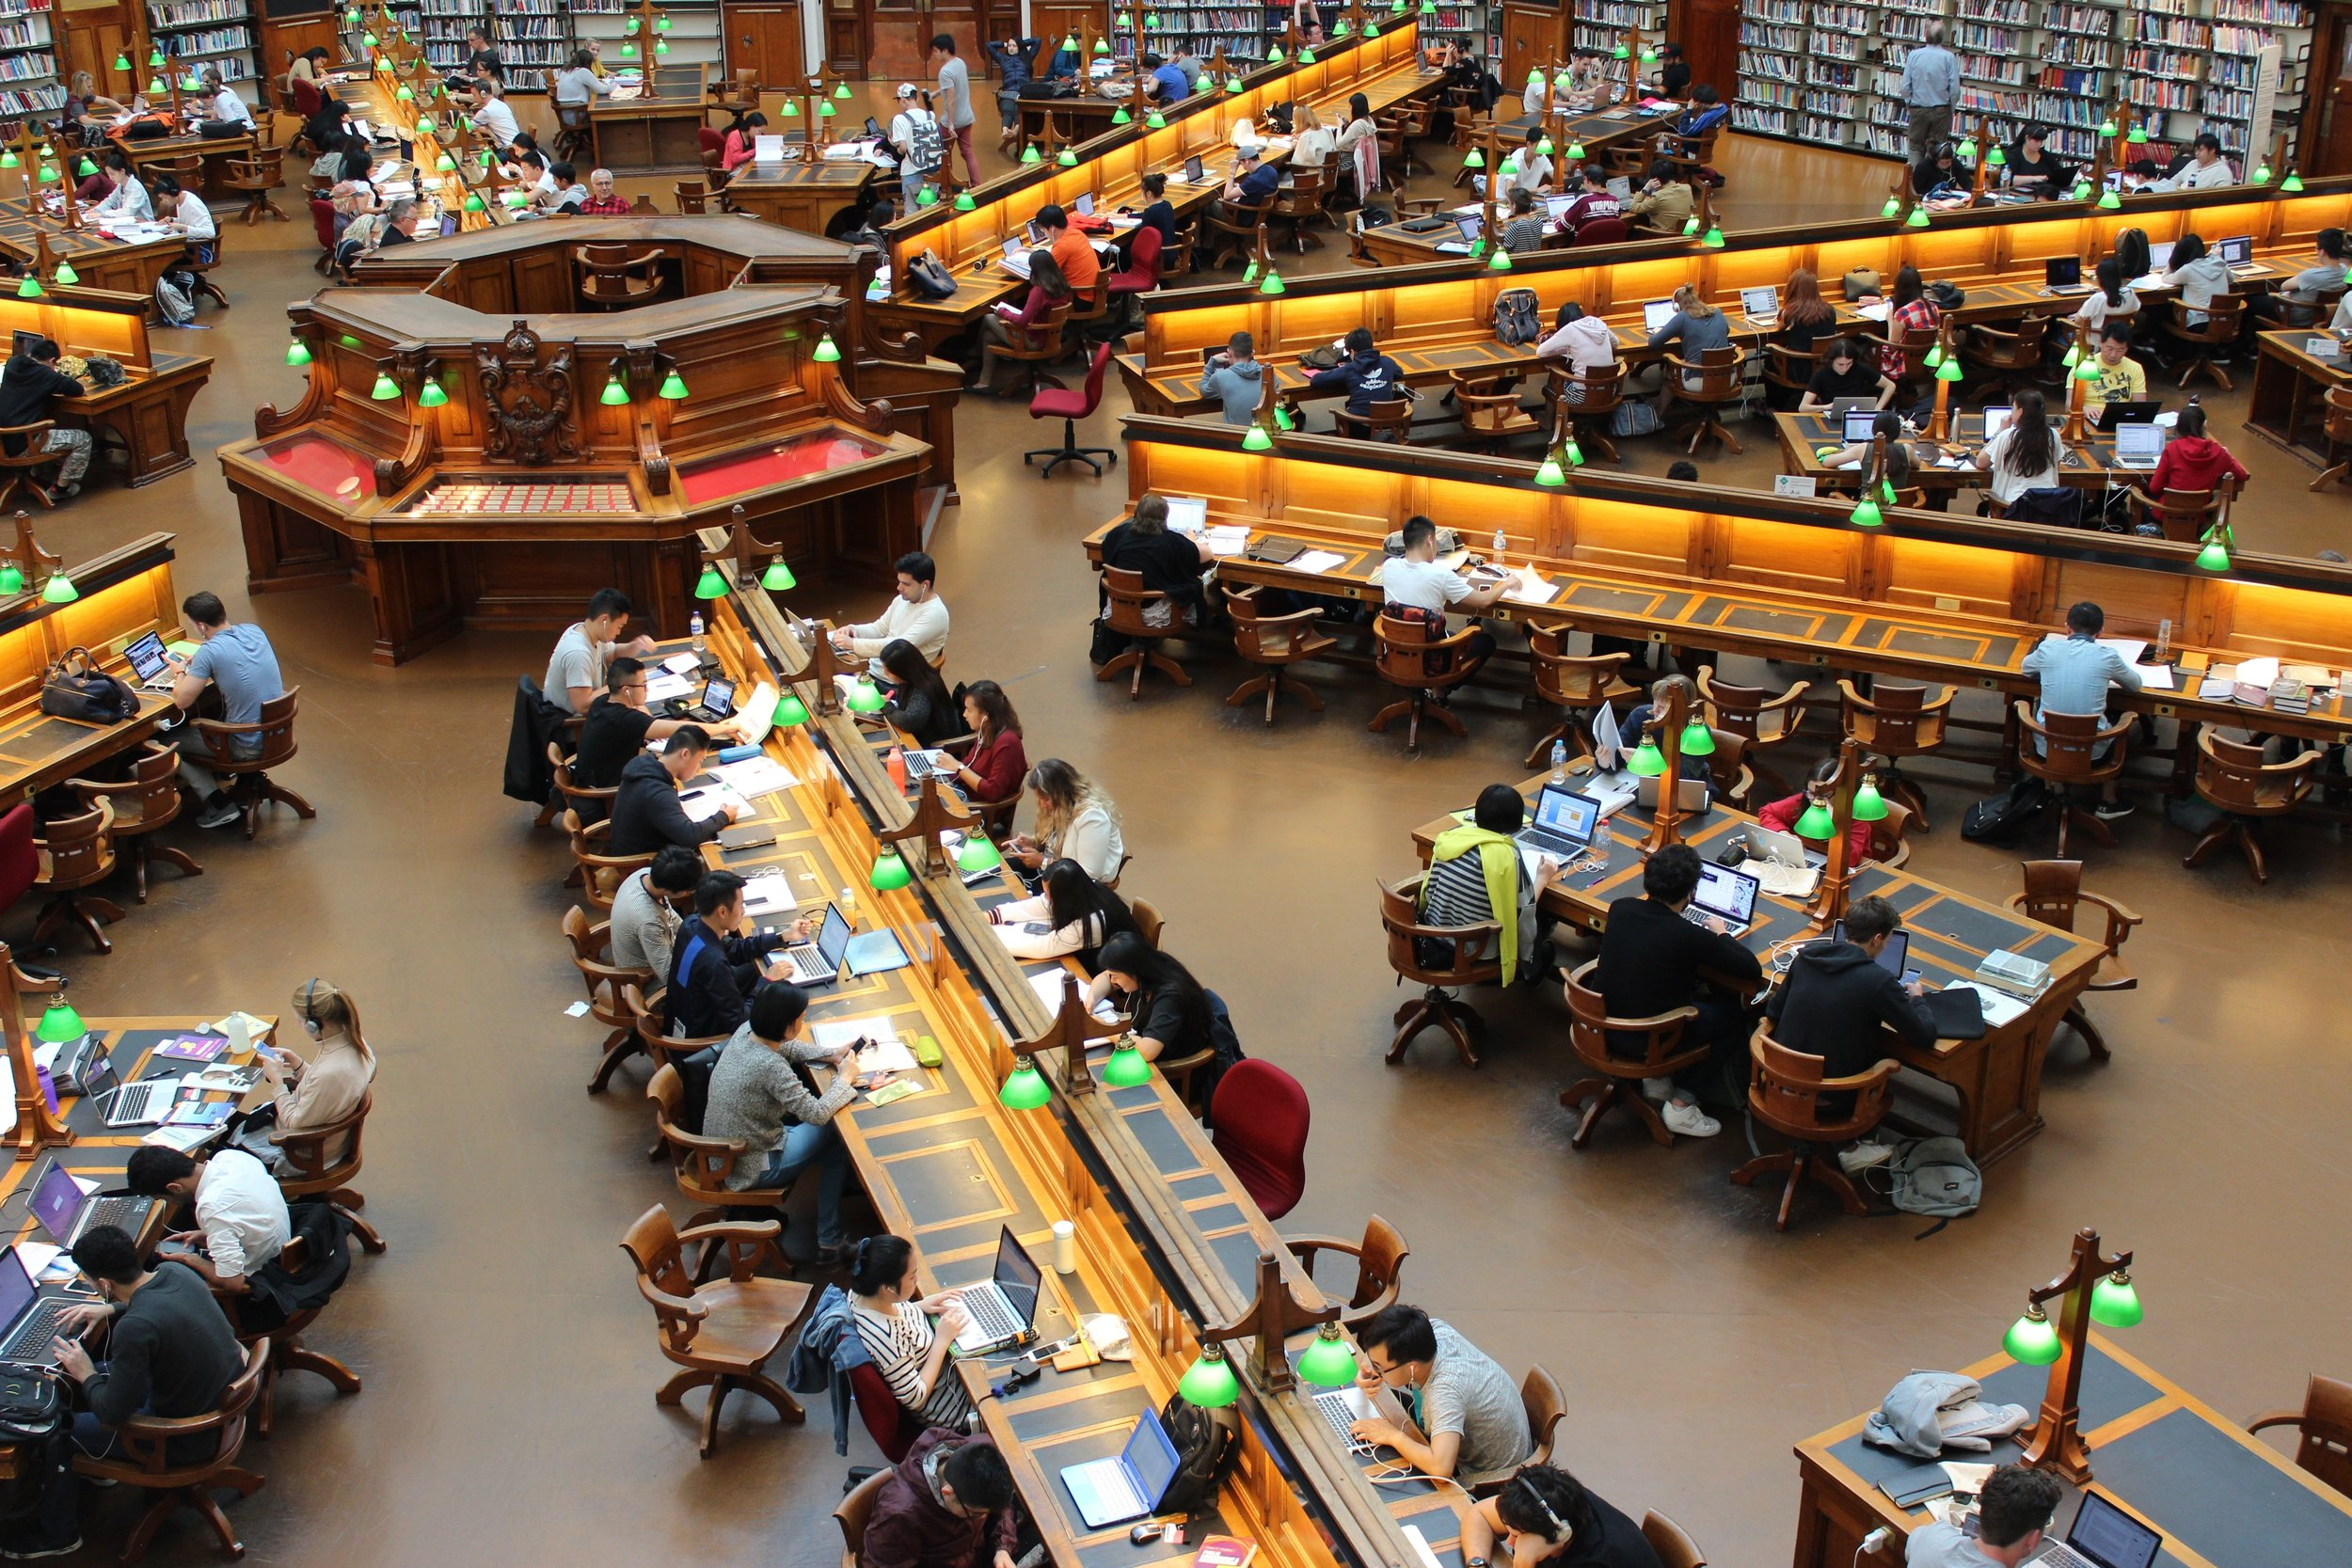 Library full of people. Photo by Pixabay on Pexels.